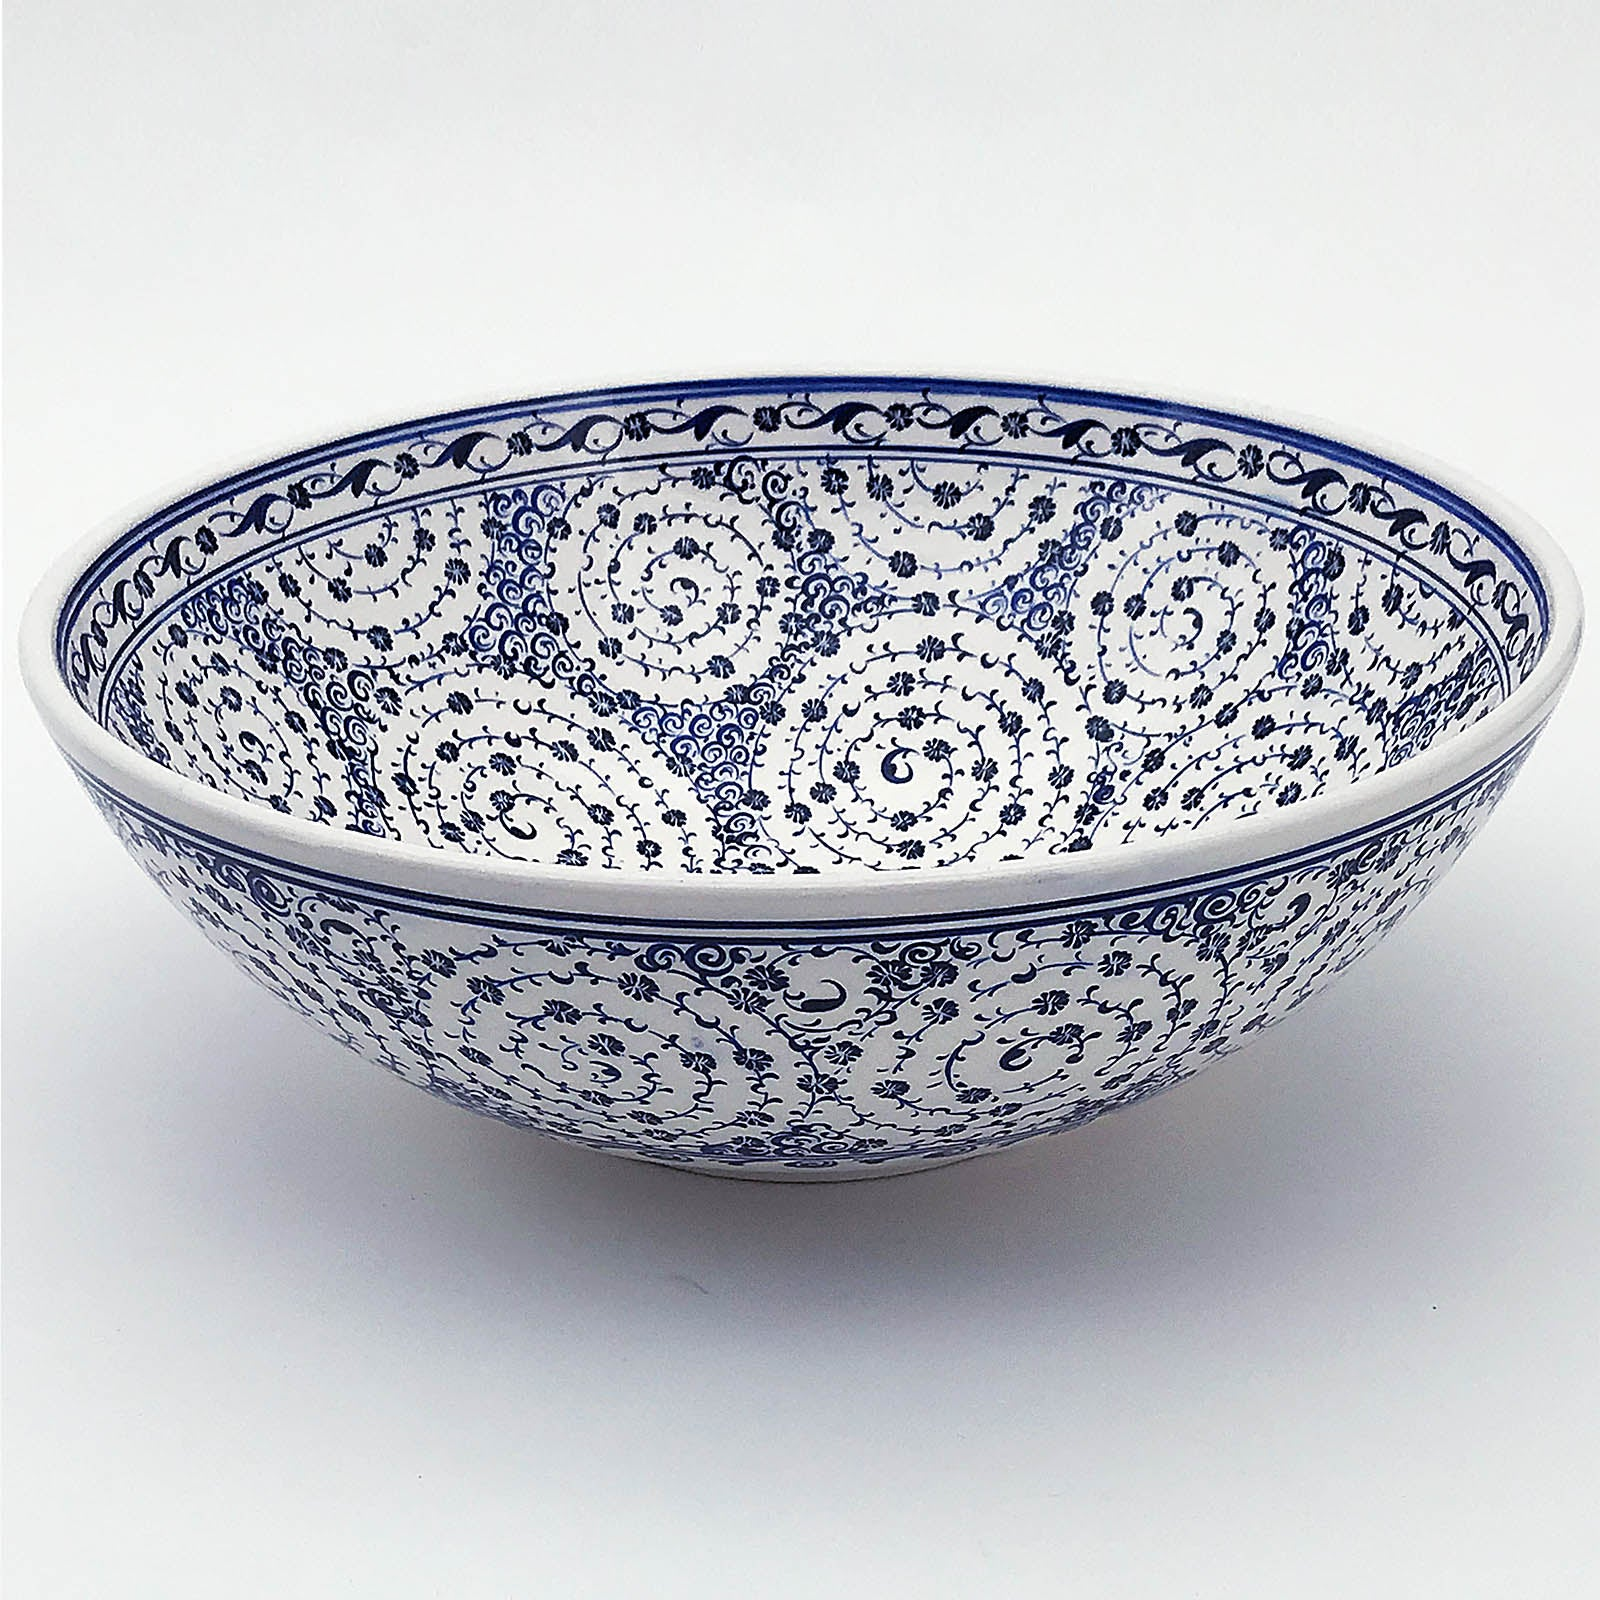 Handmade   Kutaya Turkish ceramic Bowl  KUC008